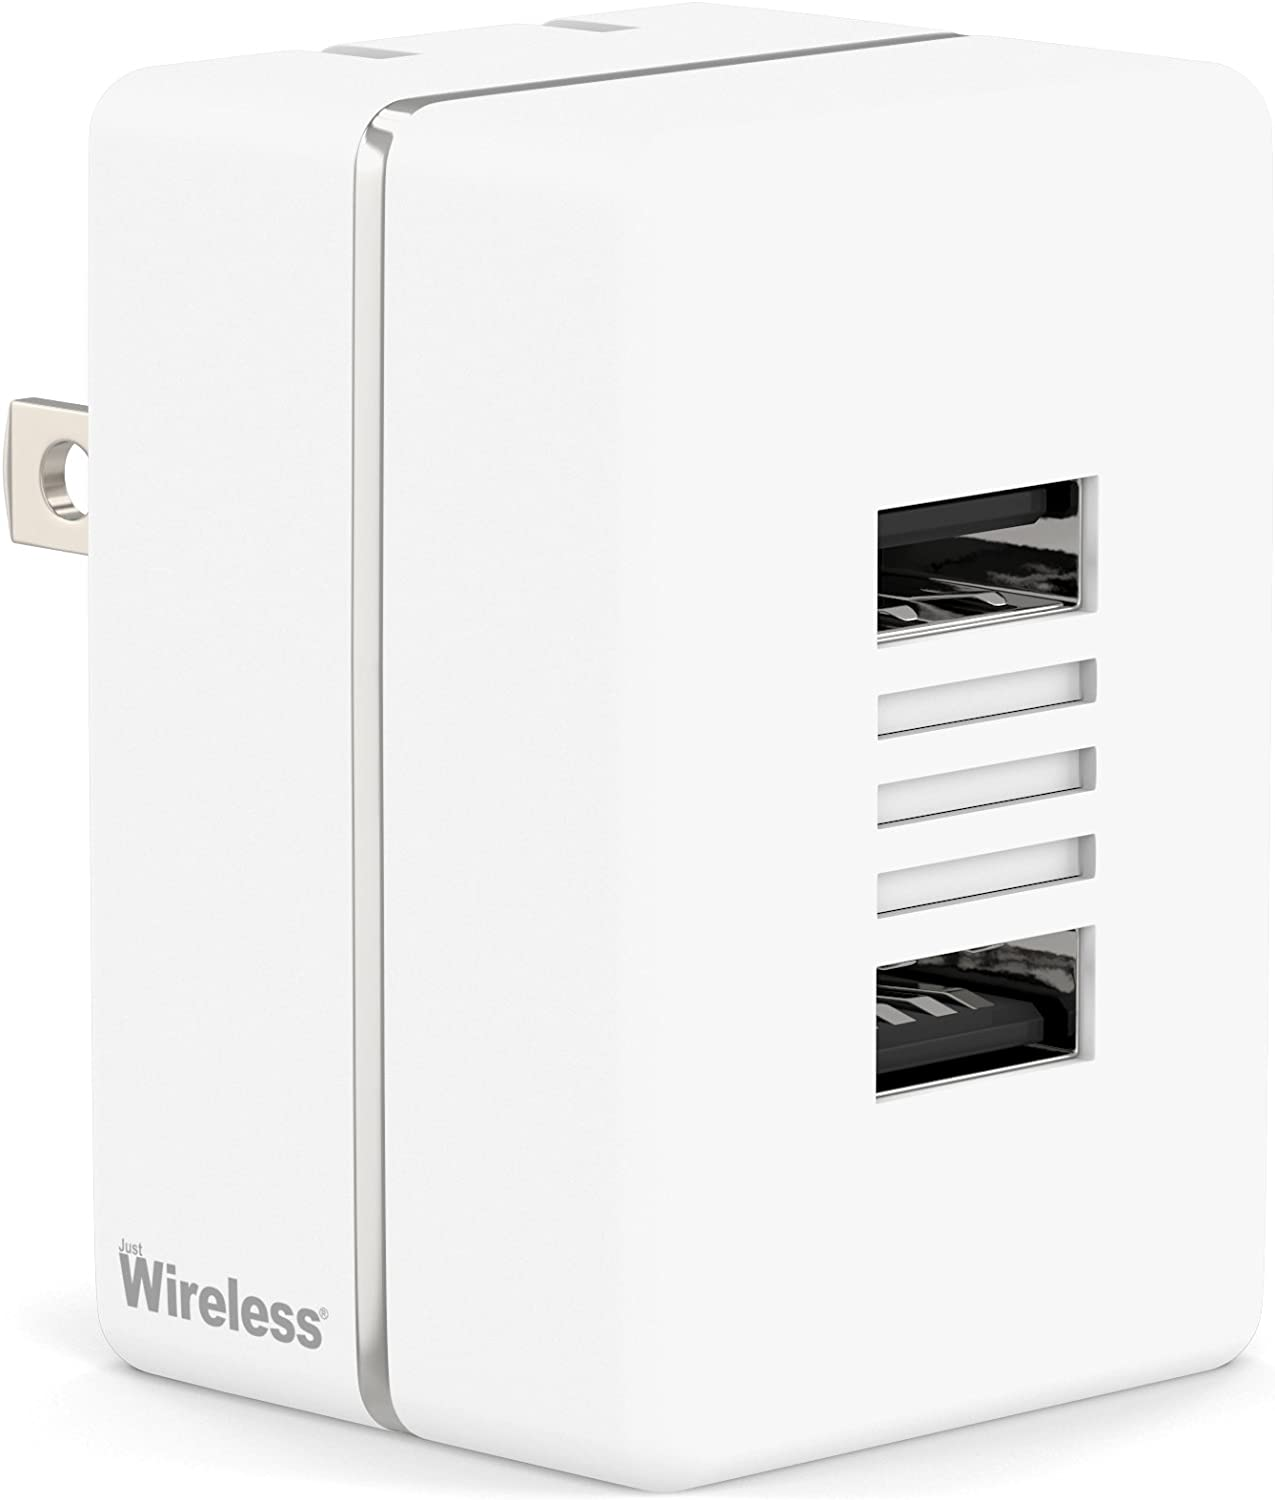 Just Wireless USB Wall Charger Dual Port 20W/4.2A Universal Phone Charger for Apple and Android Cell Phones and Devices (iPhone XS, XS Max, XR, X, 8, 8 Plus, 7, 6S, iPad, iPod, Samsung Galaxy) - White